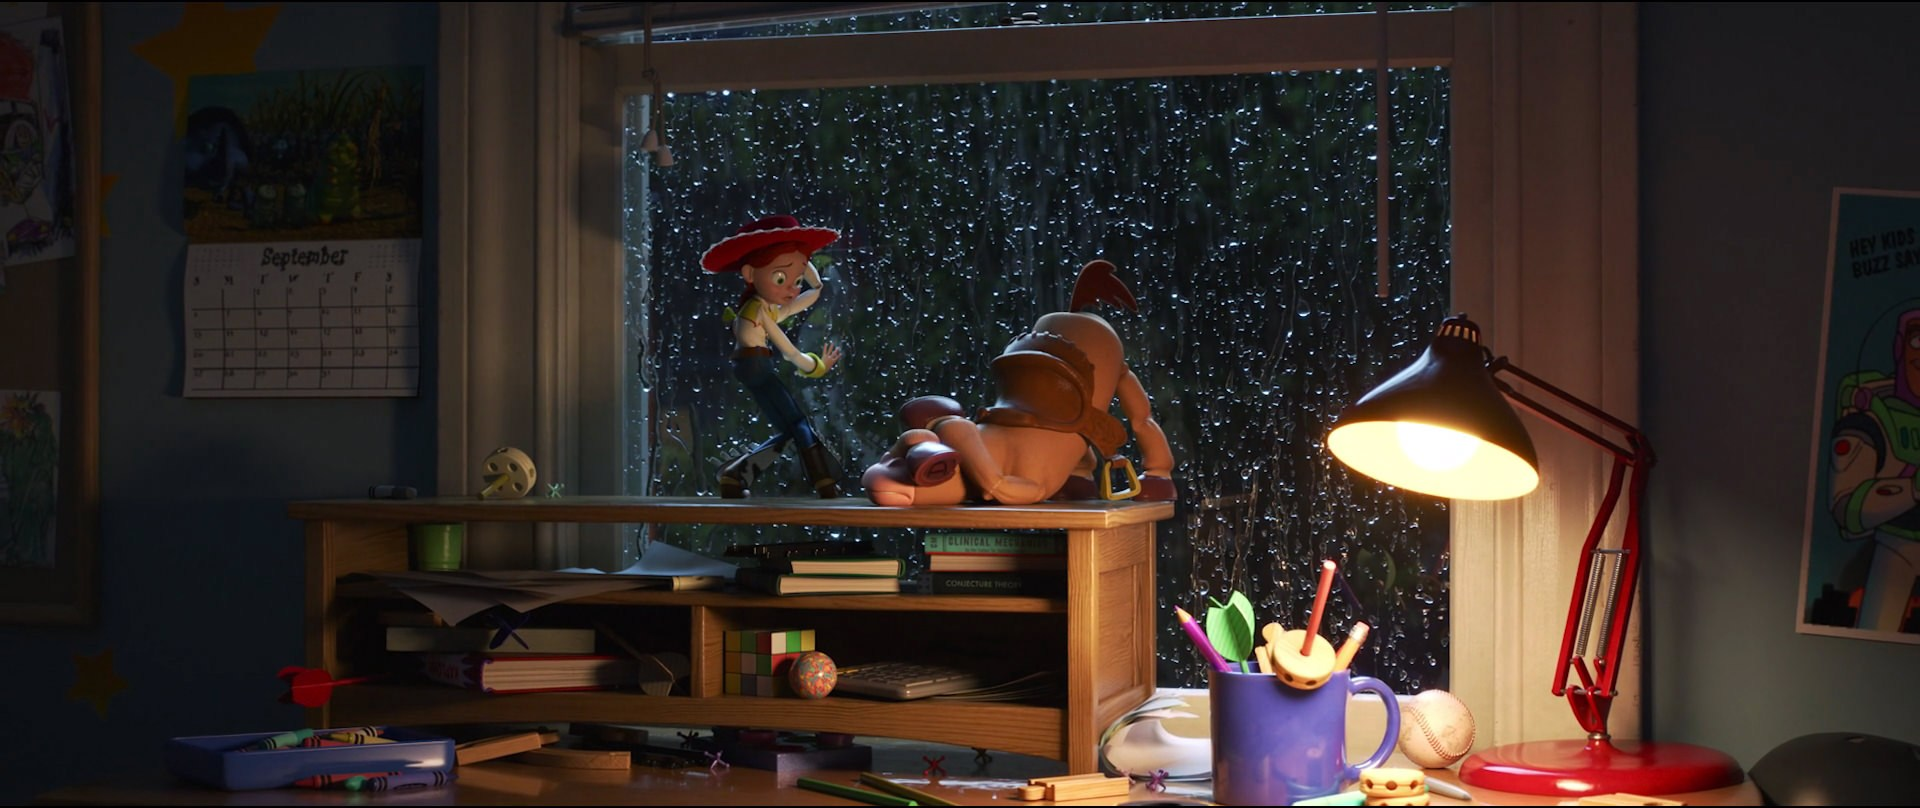 Toy Story 4 Trivia